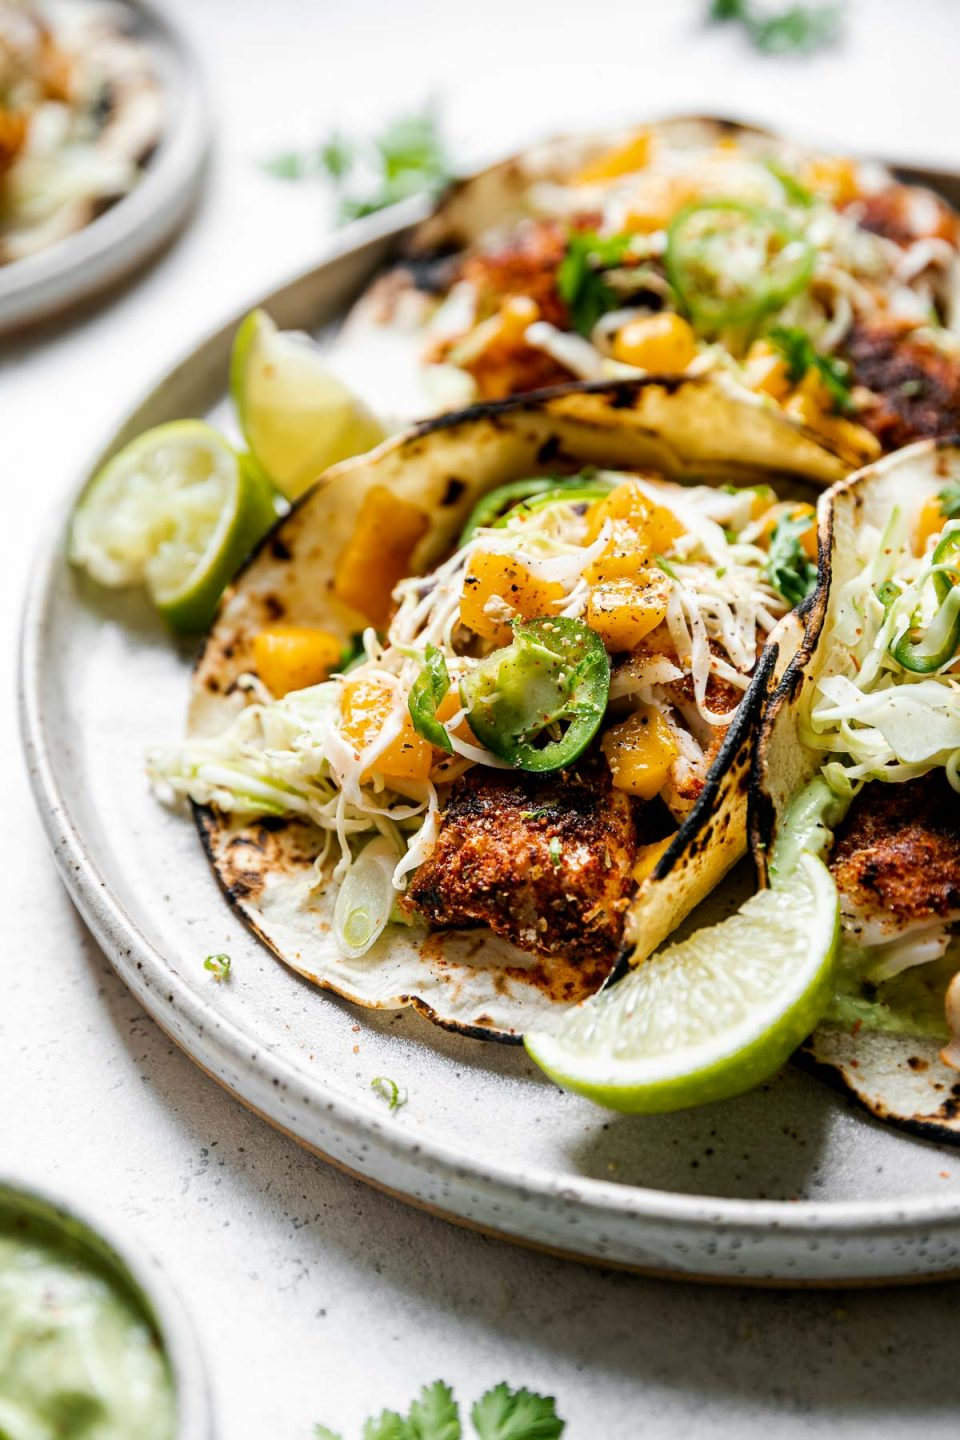 Side view of 3 assembled grilled cod fish tacos topped with ginger mango slaw. The tacos sit atop a gray speckled ceramic plate with a small dish of avocado crema & lime wedges. The plate sits on a white surface, next to a gray and white striped linen napkin.